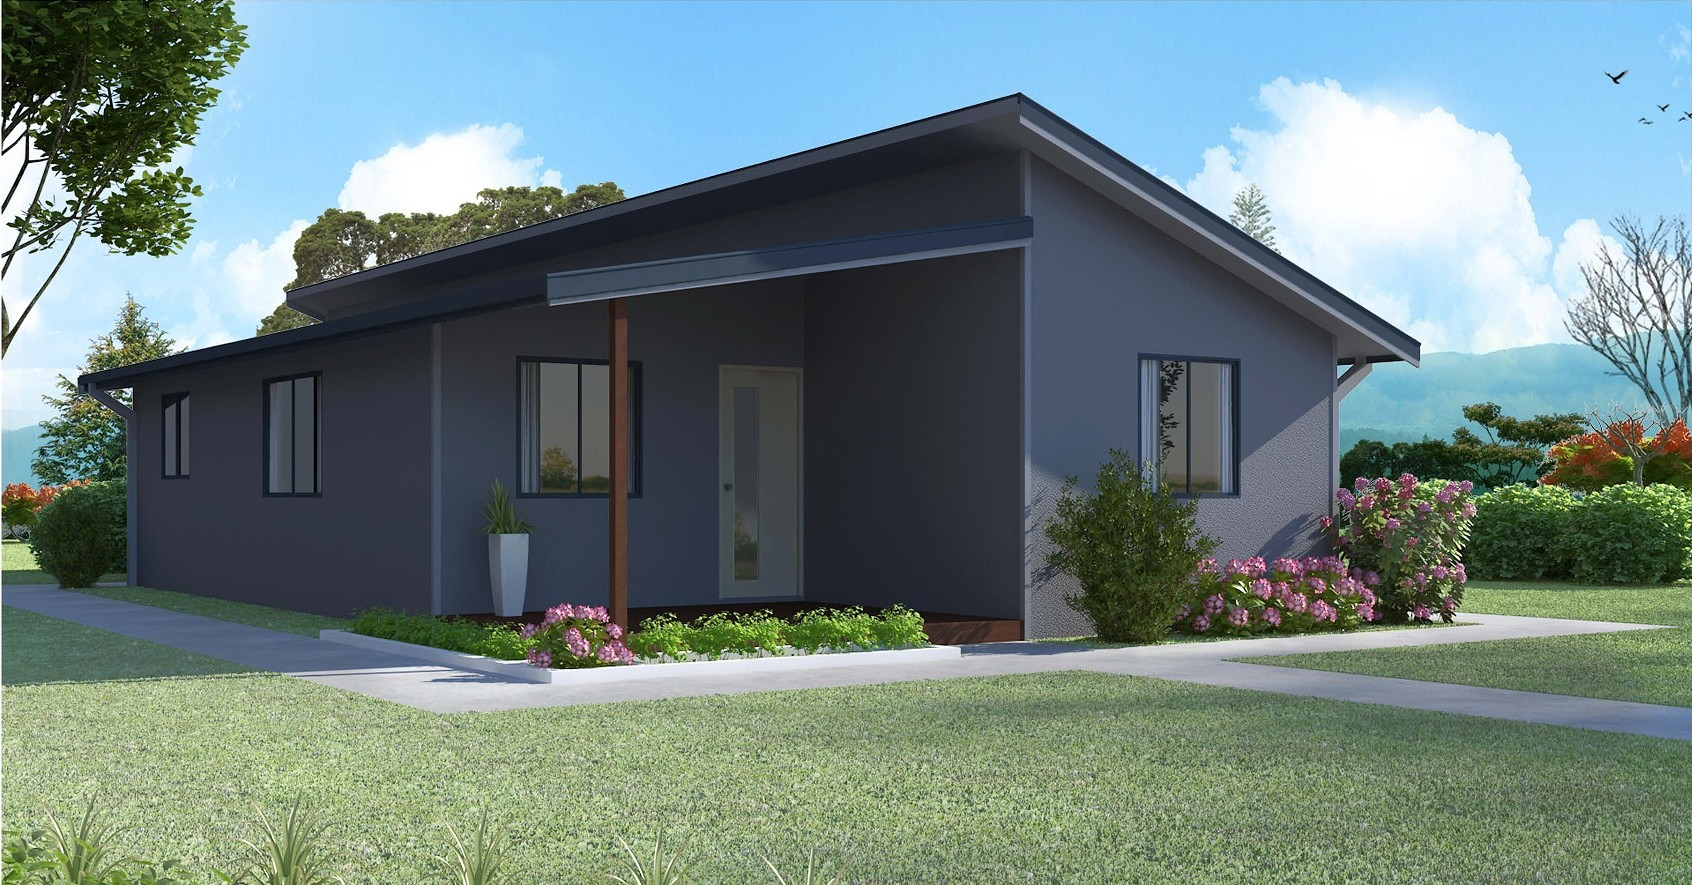 Kit homes south australia wholesale homes and sheds for 4 bedroom kit home prices